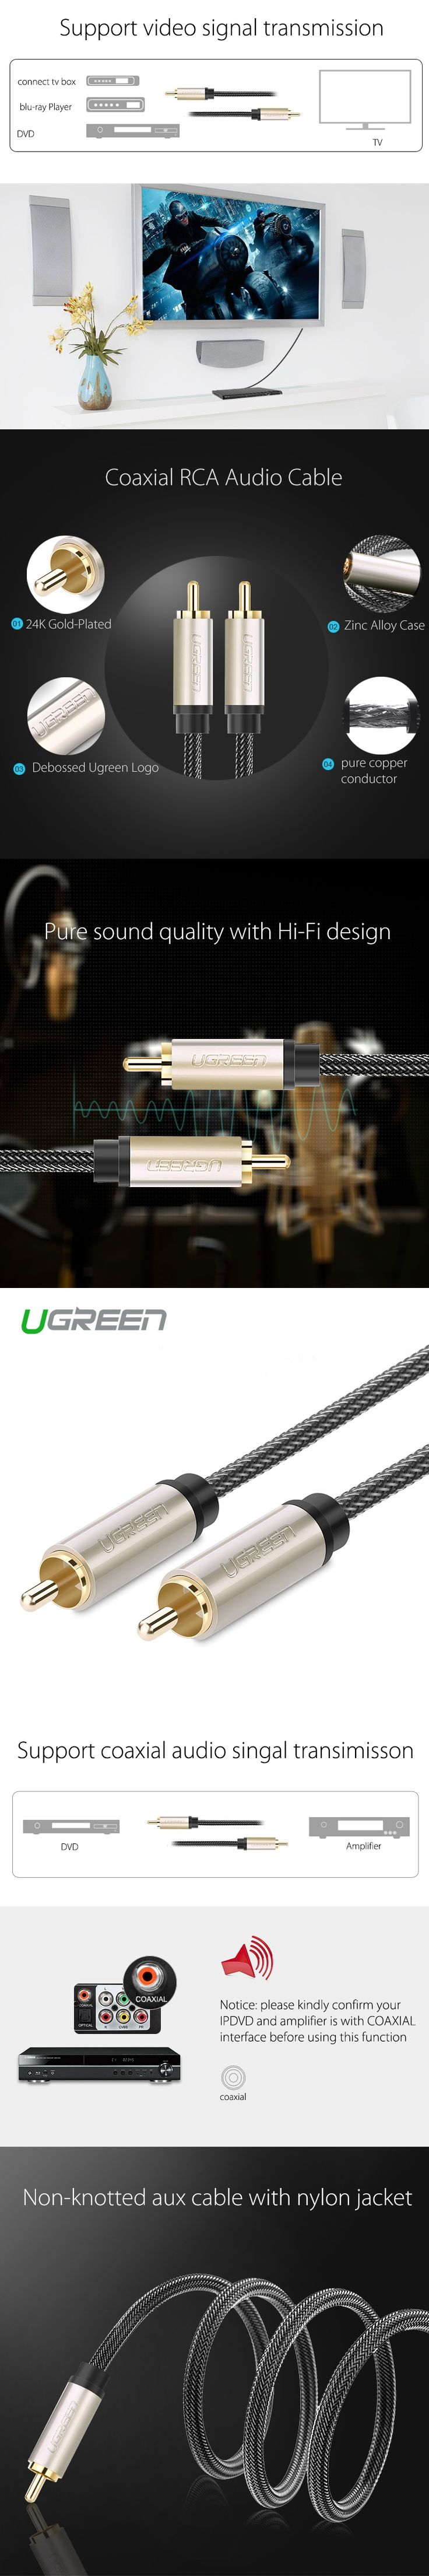 Ugreen AV133 audio cable coaxial SPDIF audio dvd subwoofer amp RCA video connection even 75 ohms